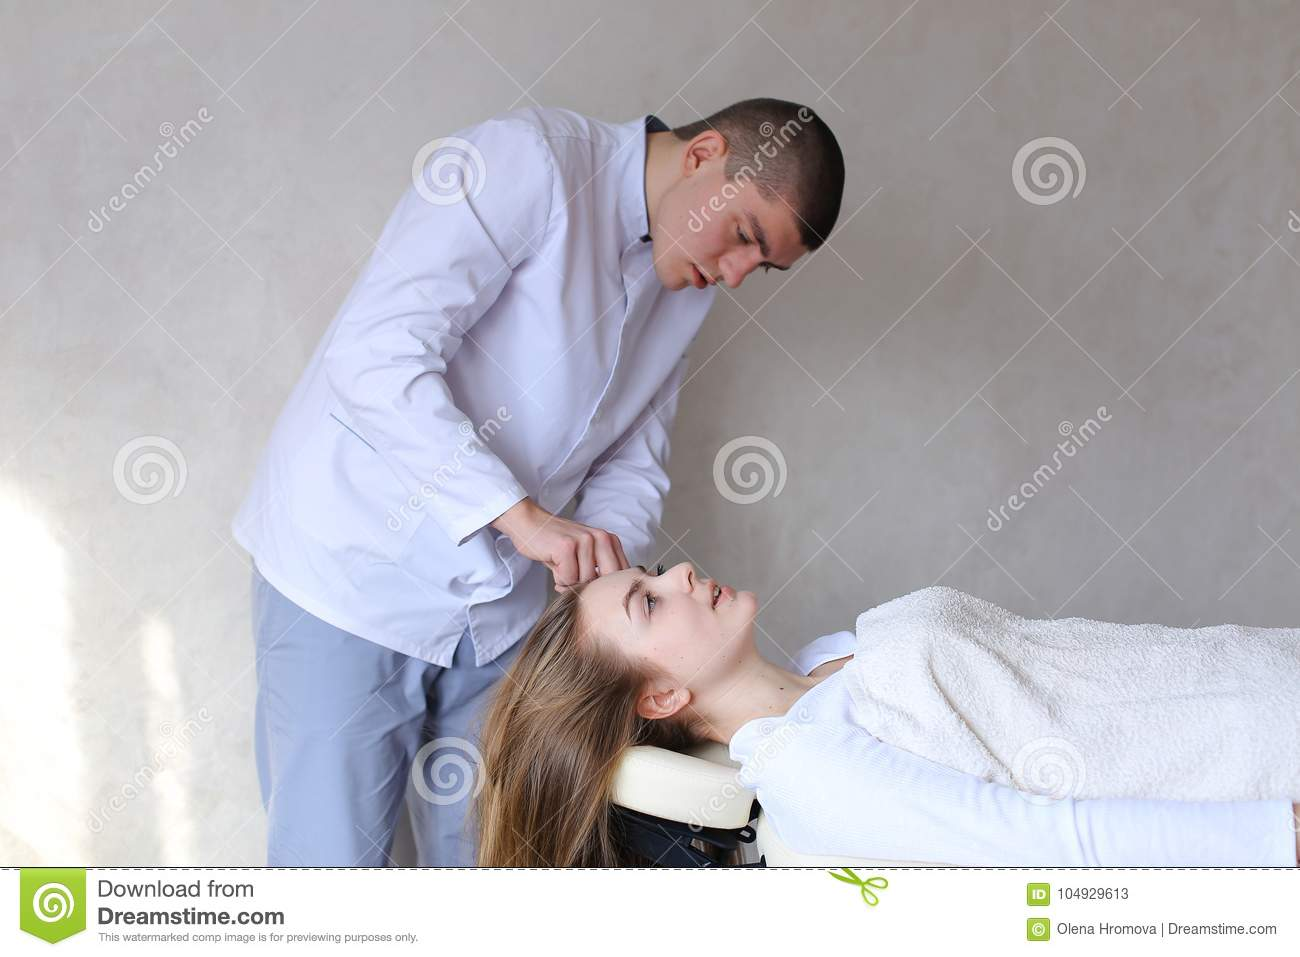 girl gives girl a massage